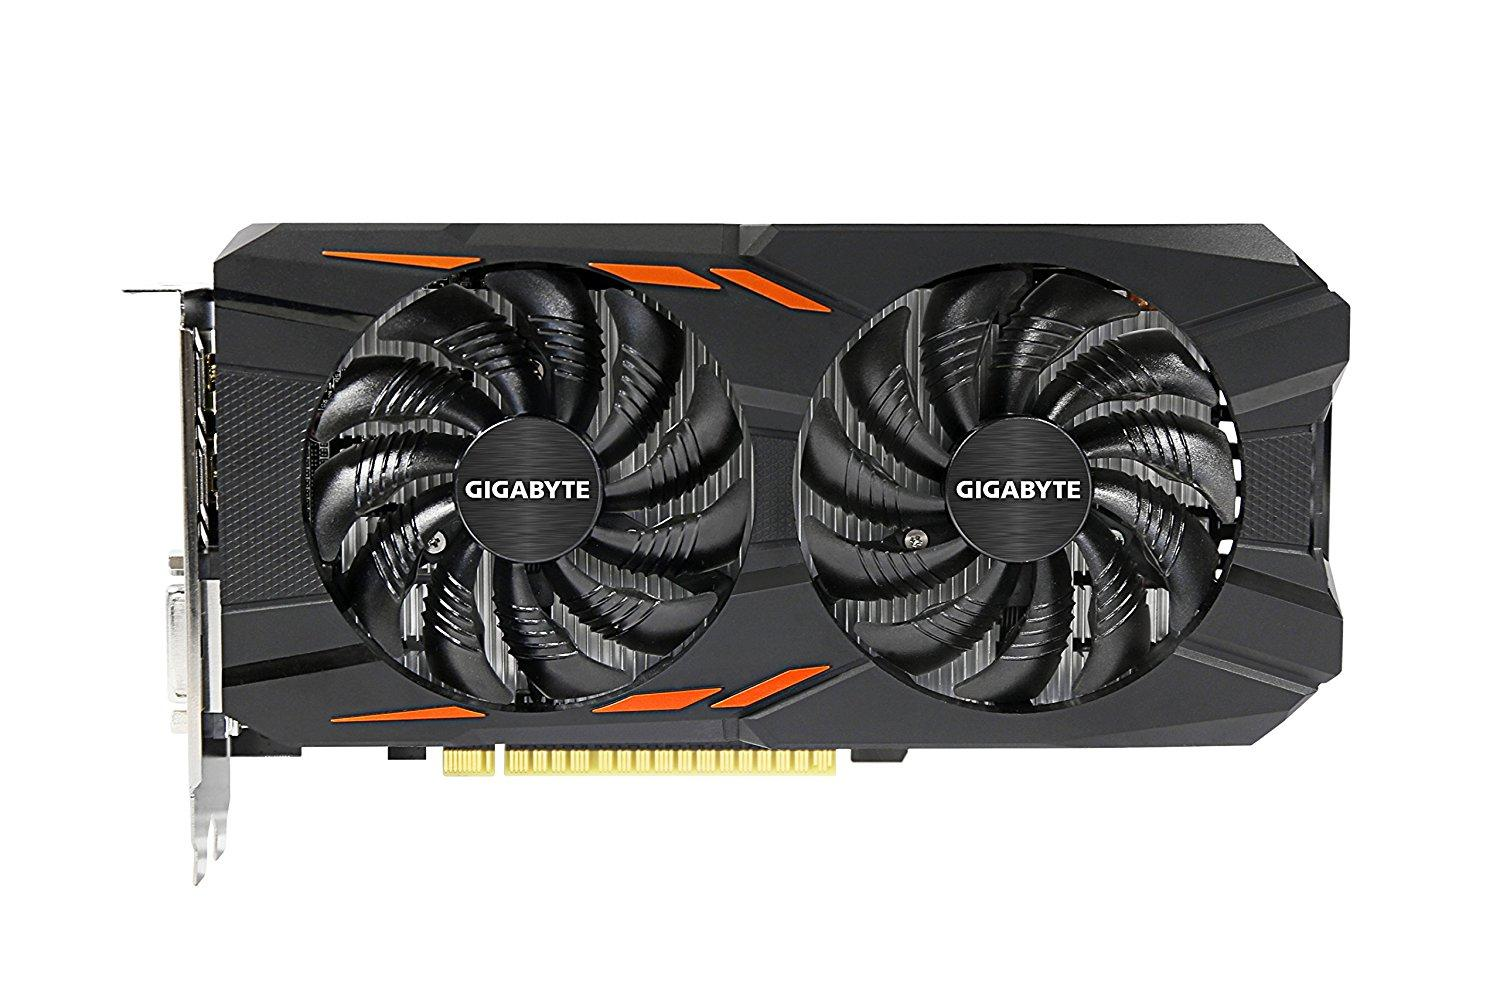 Gigabyte gtx 750 ti windforce review pure overclock page 3 - View Larger